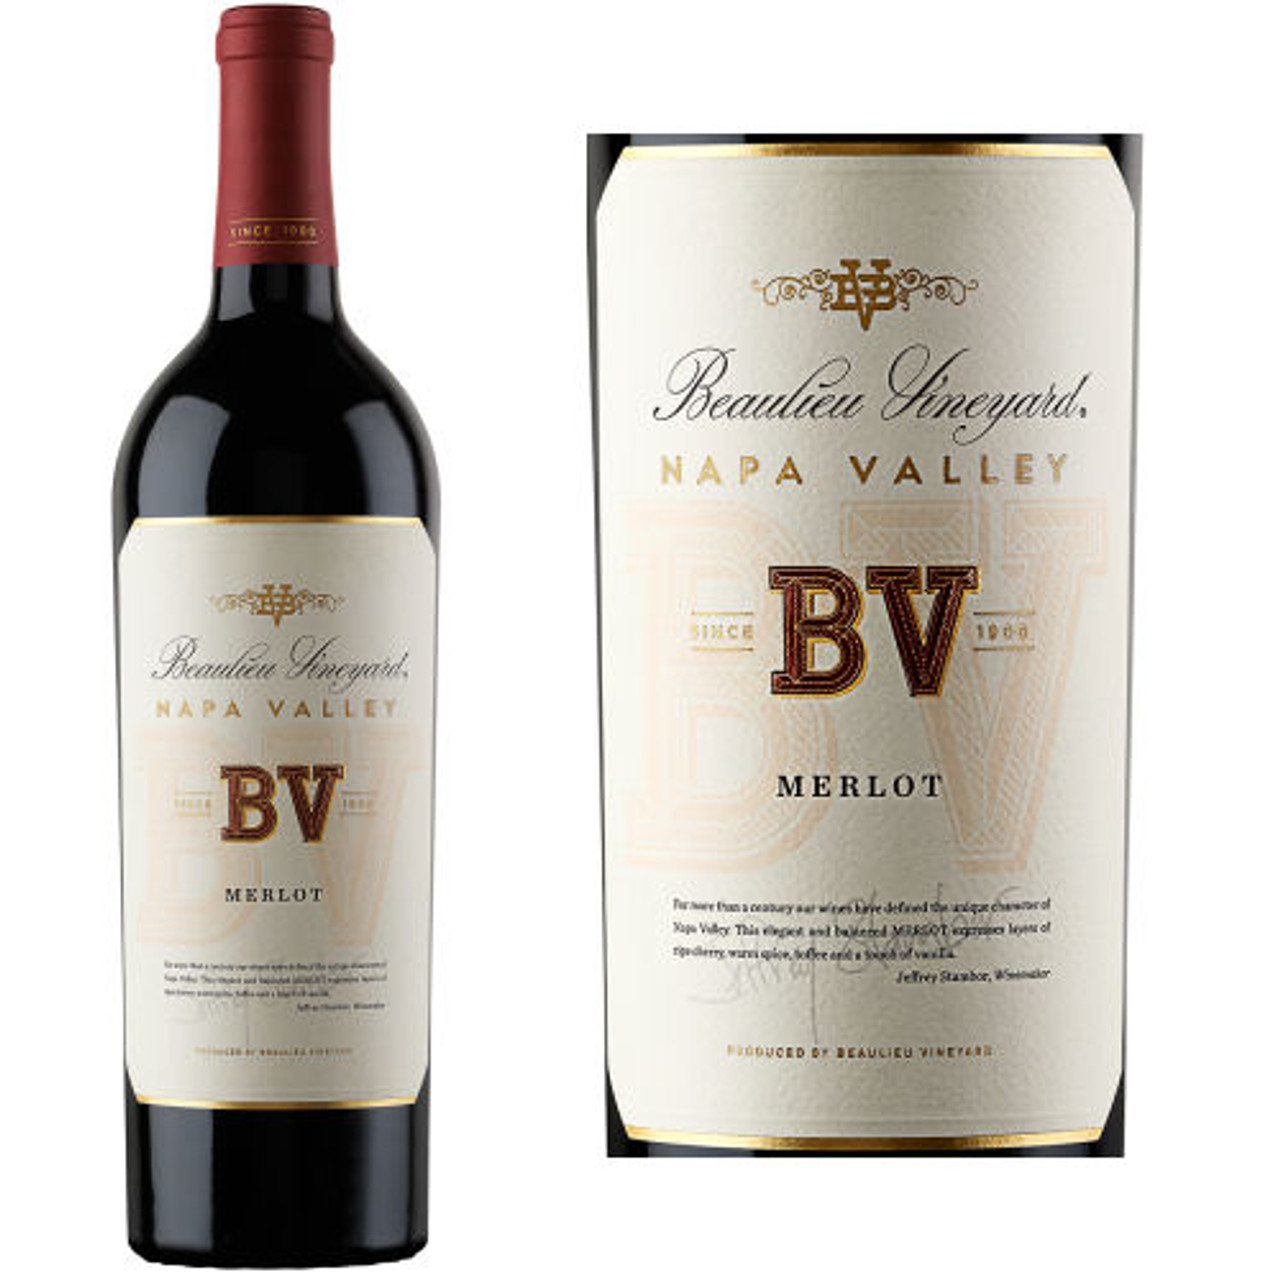 Beaulieu Vineyard Napa Merlot